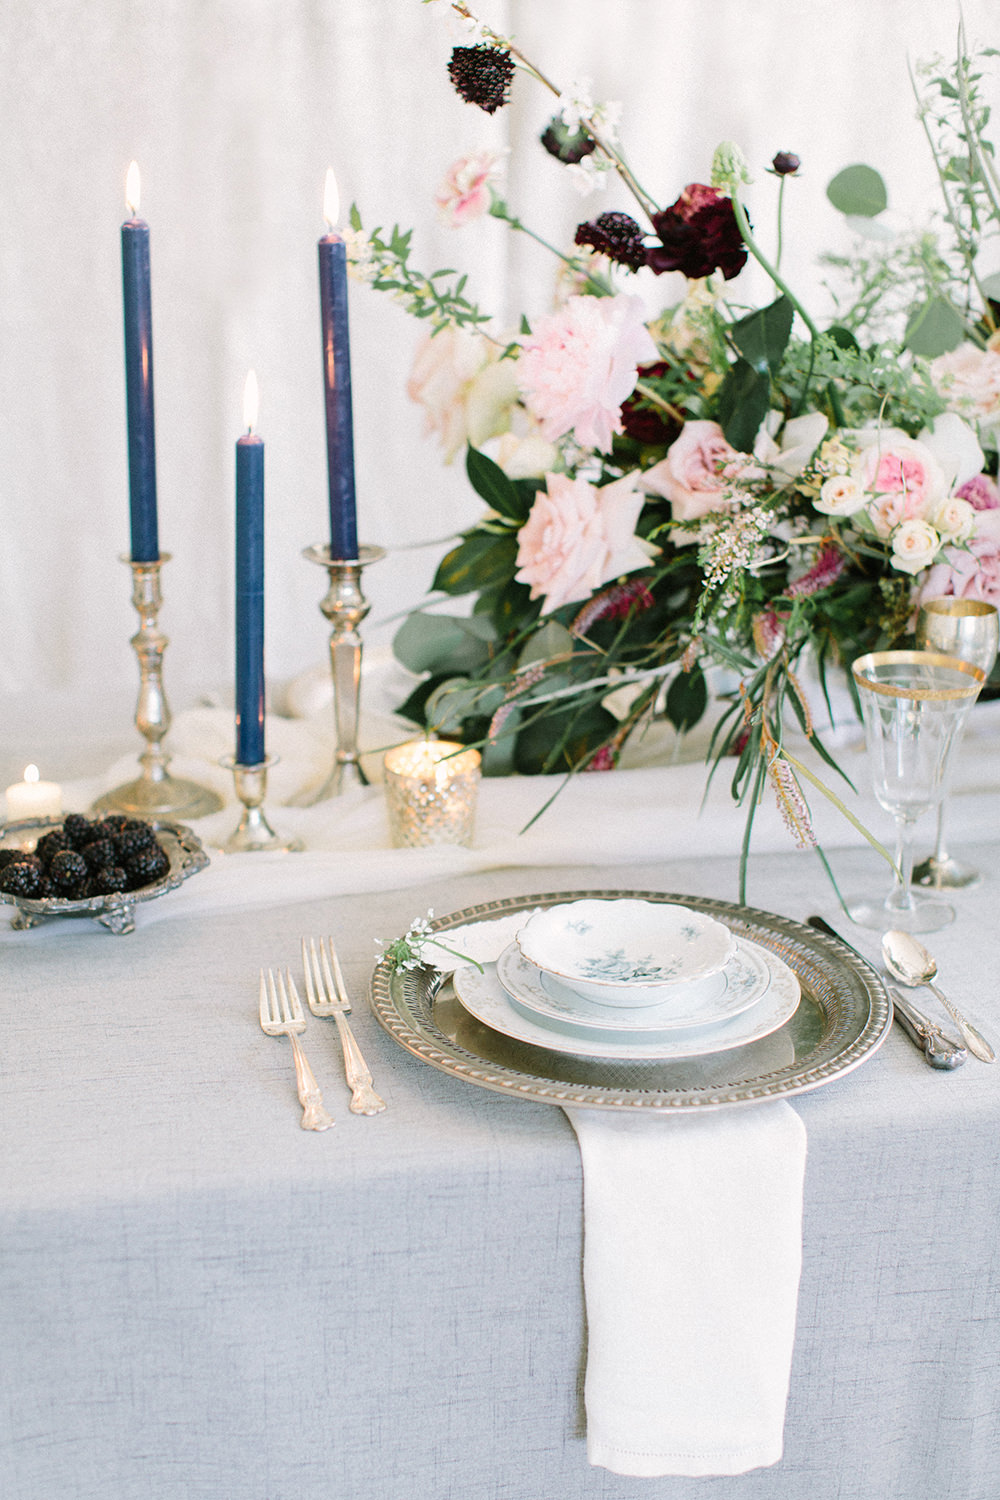 wedding place settings - photo by Erica J Photography https://ruffledblog.com/old-world-wedding-editorial-at-vizcaya-museum